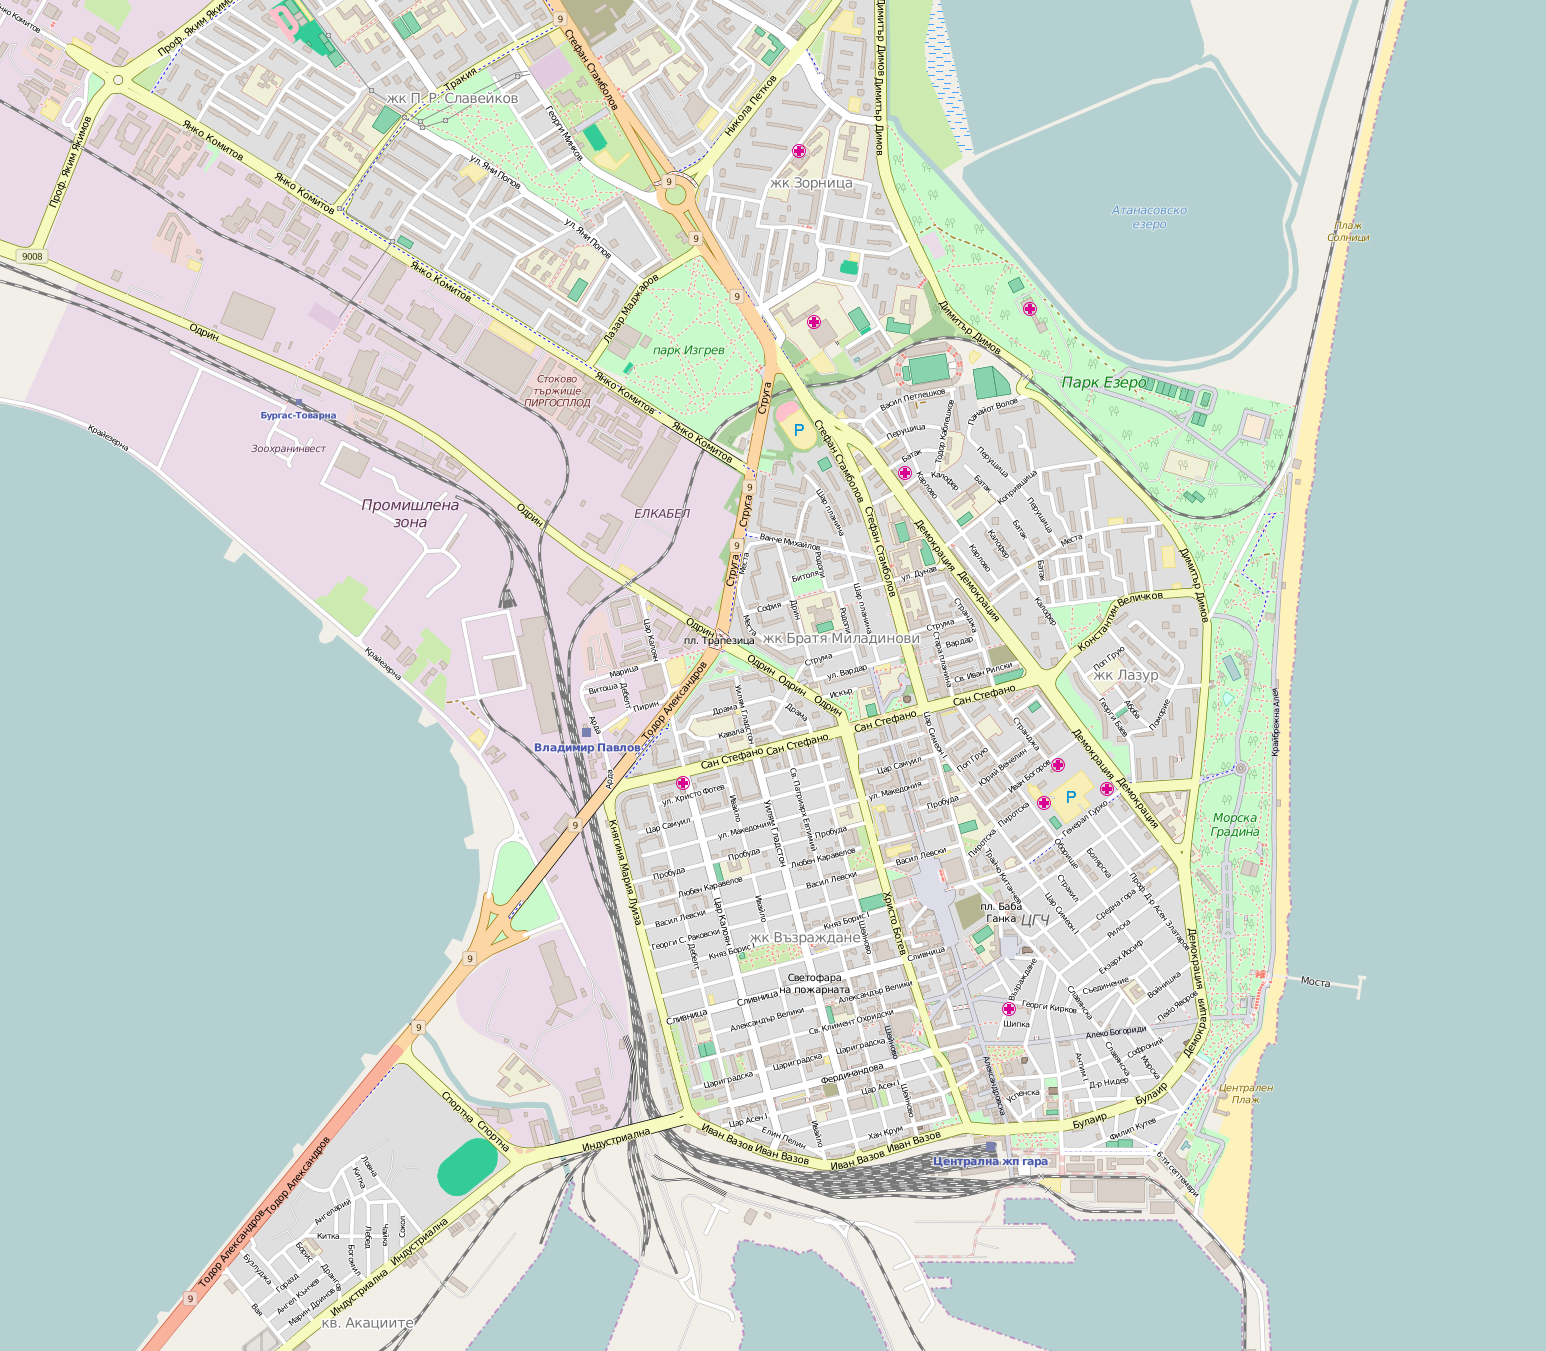 FileMap of Burgas centerpng Wikimedia Commons